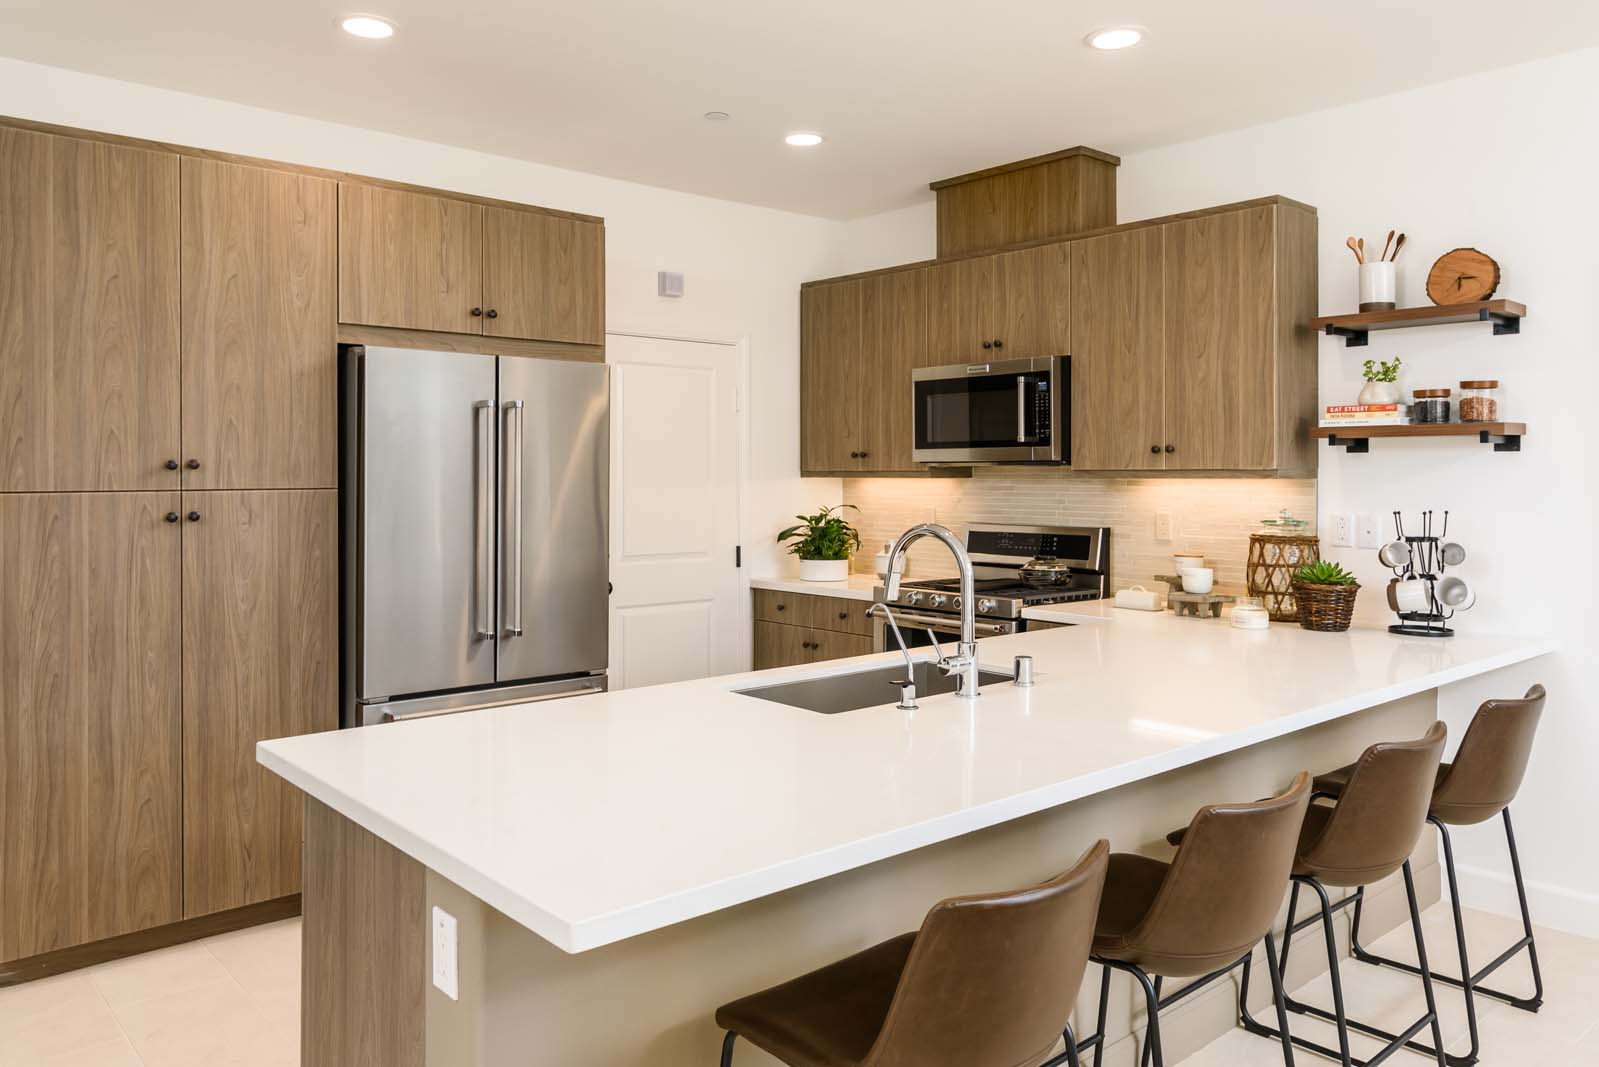 Large Kitchen in San Diego CA Townhomes for Sale